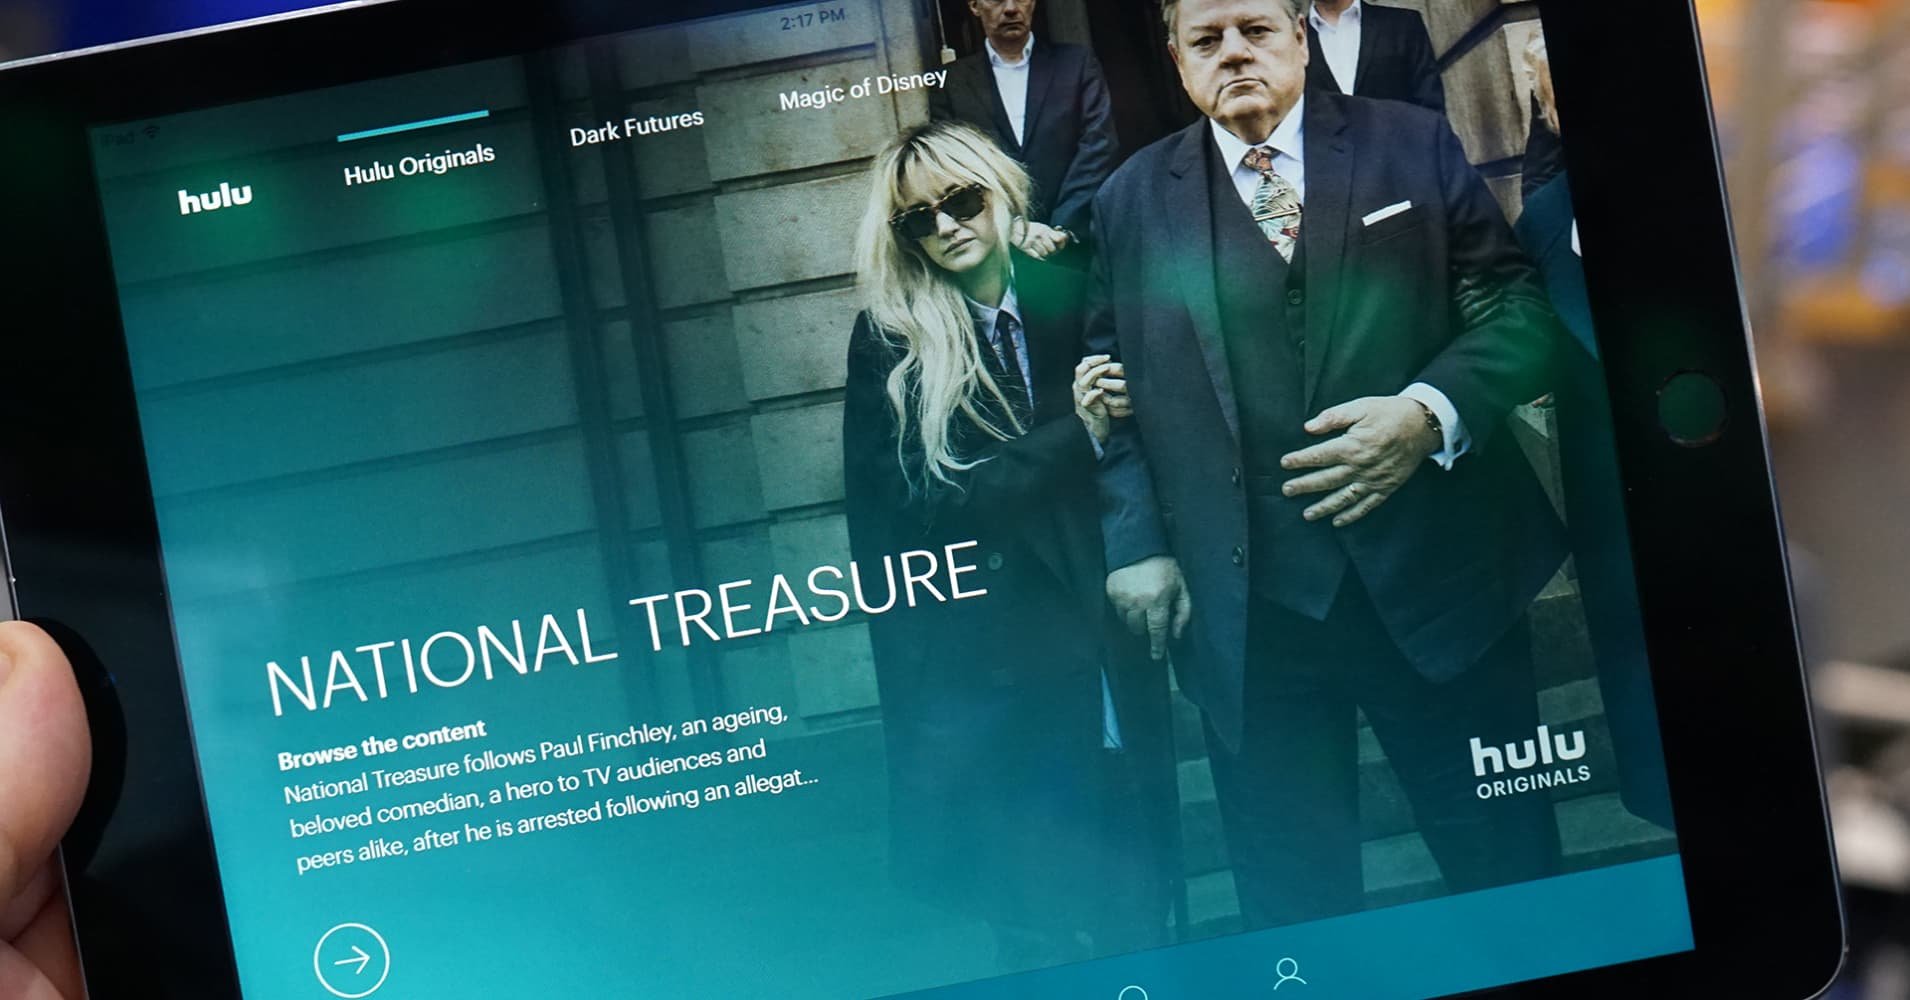 Hulu now has more than 17 million subscribers